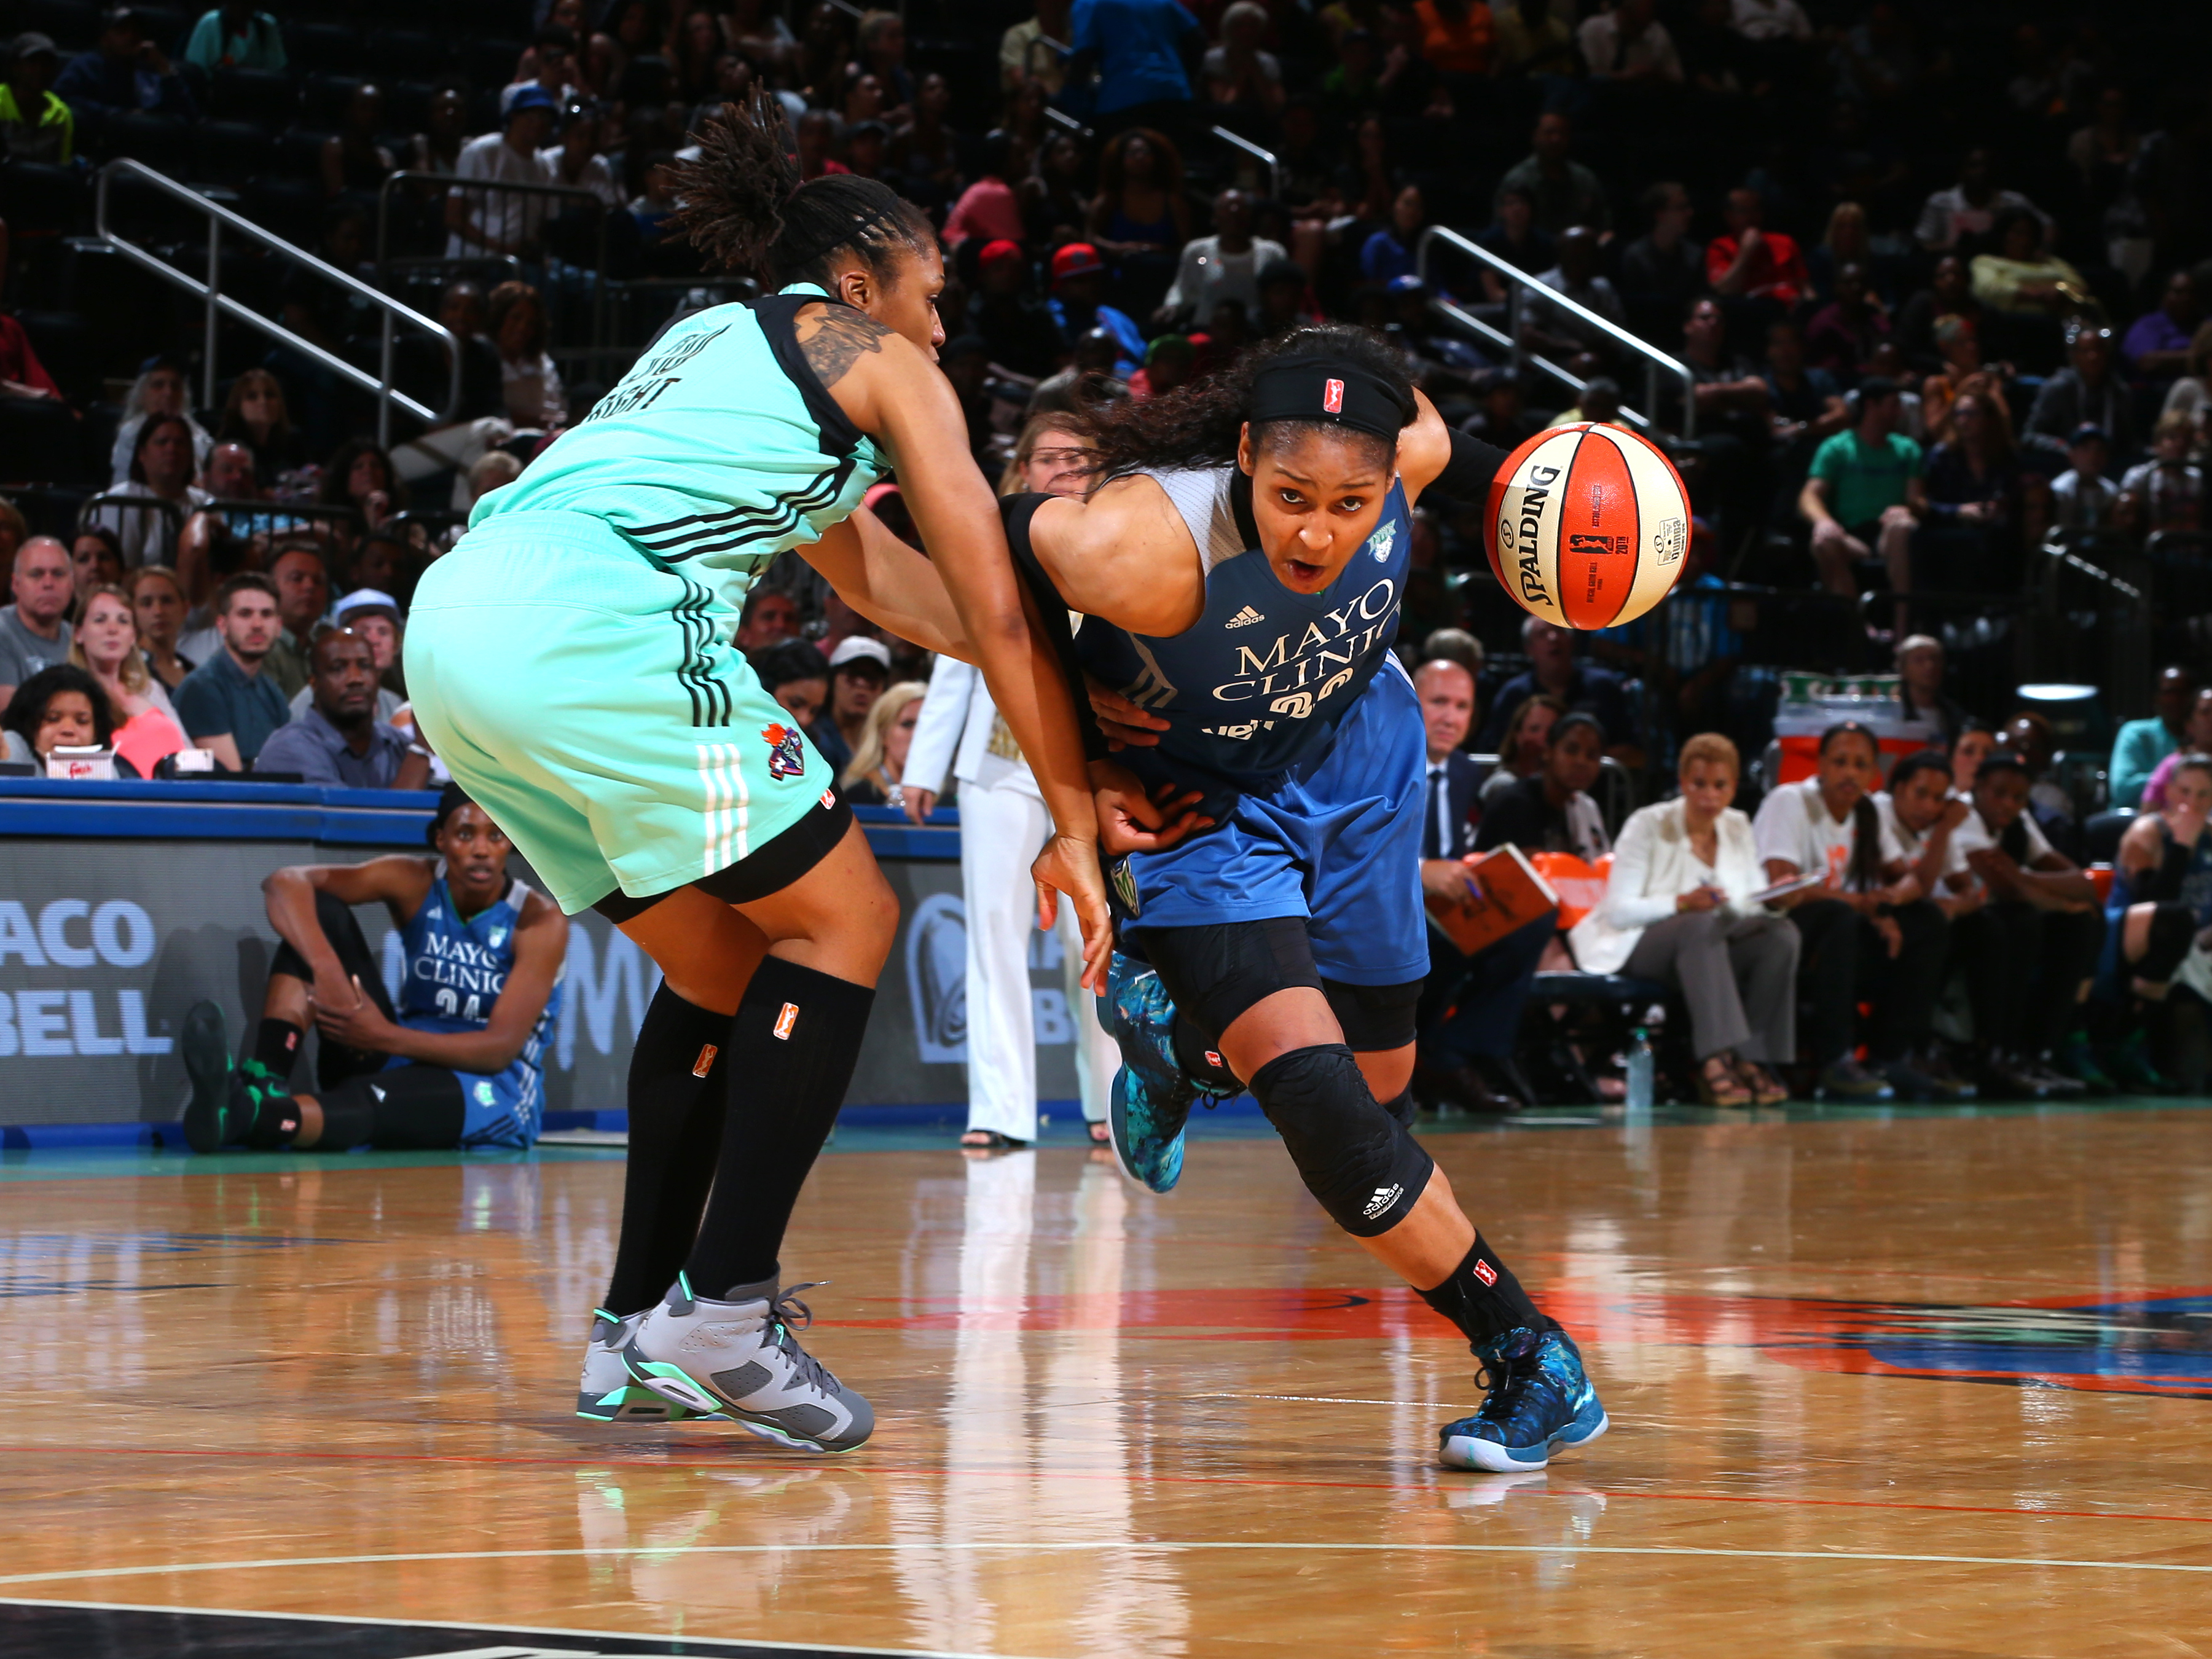 NEW YORK, NY - MAY 31:  Maya Moore #23 of the Minnesota Lynx handles the ball against the New York Liberty during the game on May 31, 2016 at Madison Square Garden in New York, New York. NOTE TO USER: User expressly acknowledges and agrees that, by downloading and or using this Photograph, user is consenting to the terms and conditions of the Getty Images License Agreement. Mandatory Copyright Notice: Copyright 2016 NBAE (Photo by Mike Stobe/NBAE via Getty Images)